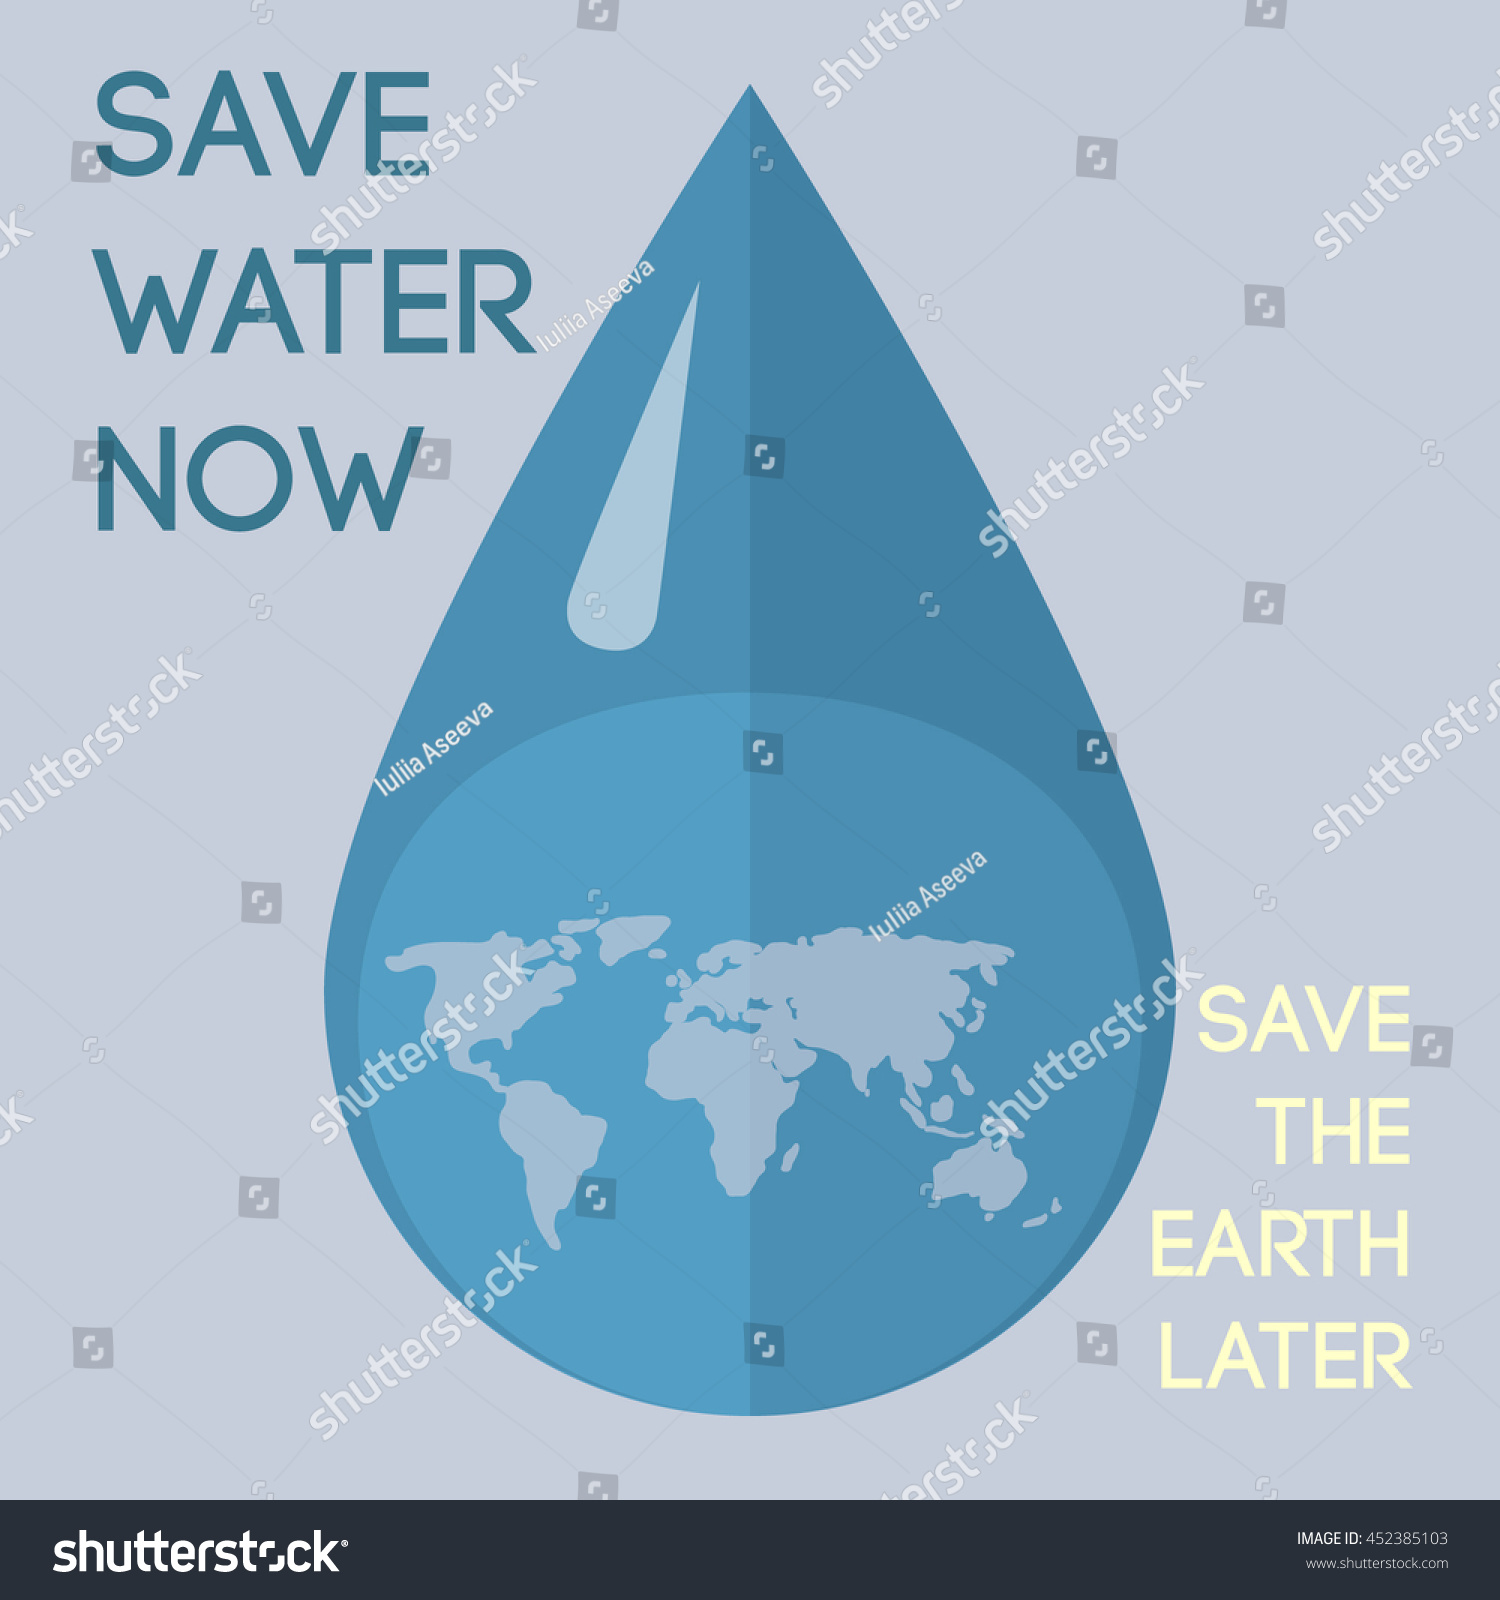 Poster design on save earth - Vector Poster Template With Text Save Water Now Save The Earth Later And